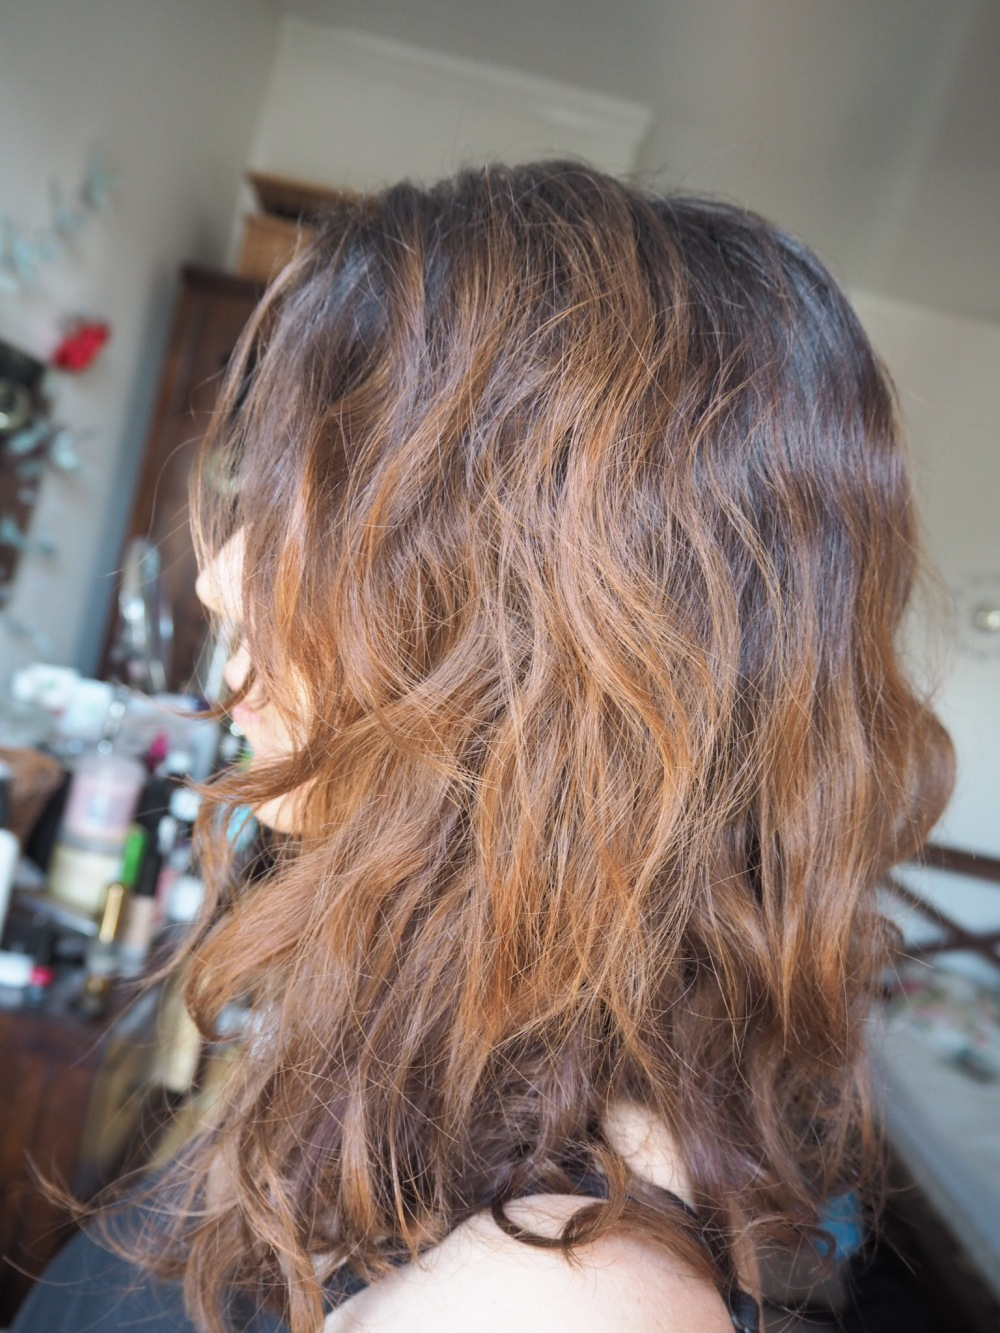 Olaplex No3 Curly hair amazon review- before photo curly frizzy brown hair